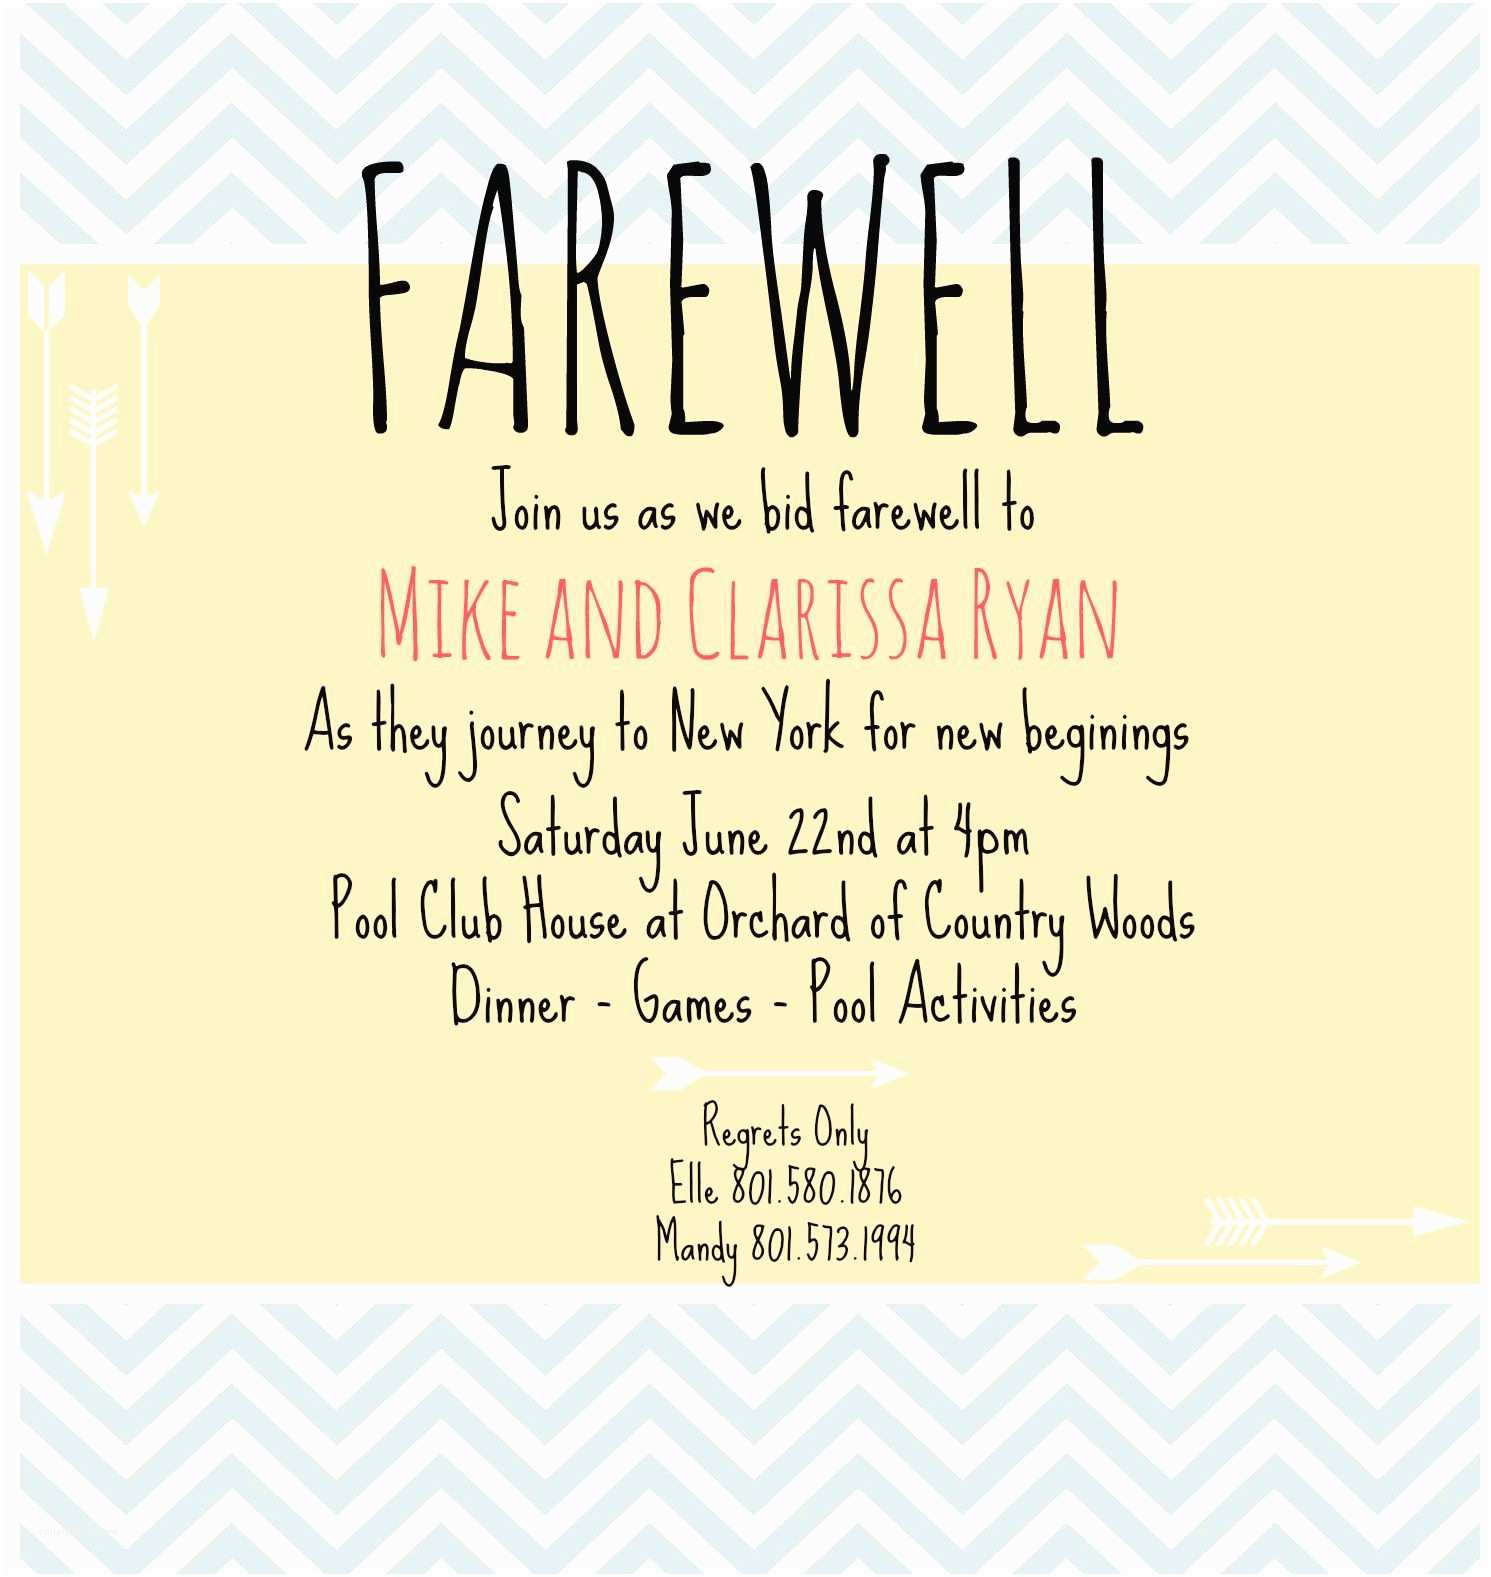 Farewell Party Invitation Wording for the Office Farewell Invite Picmonkey Creations